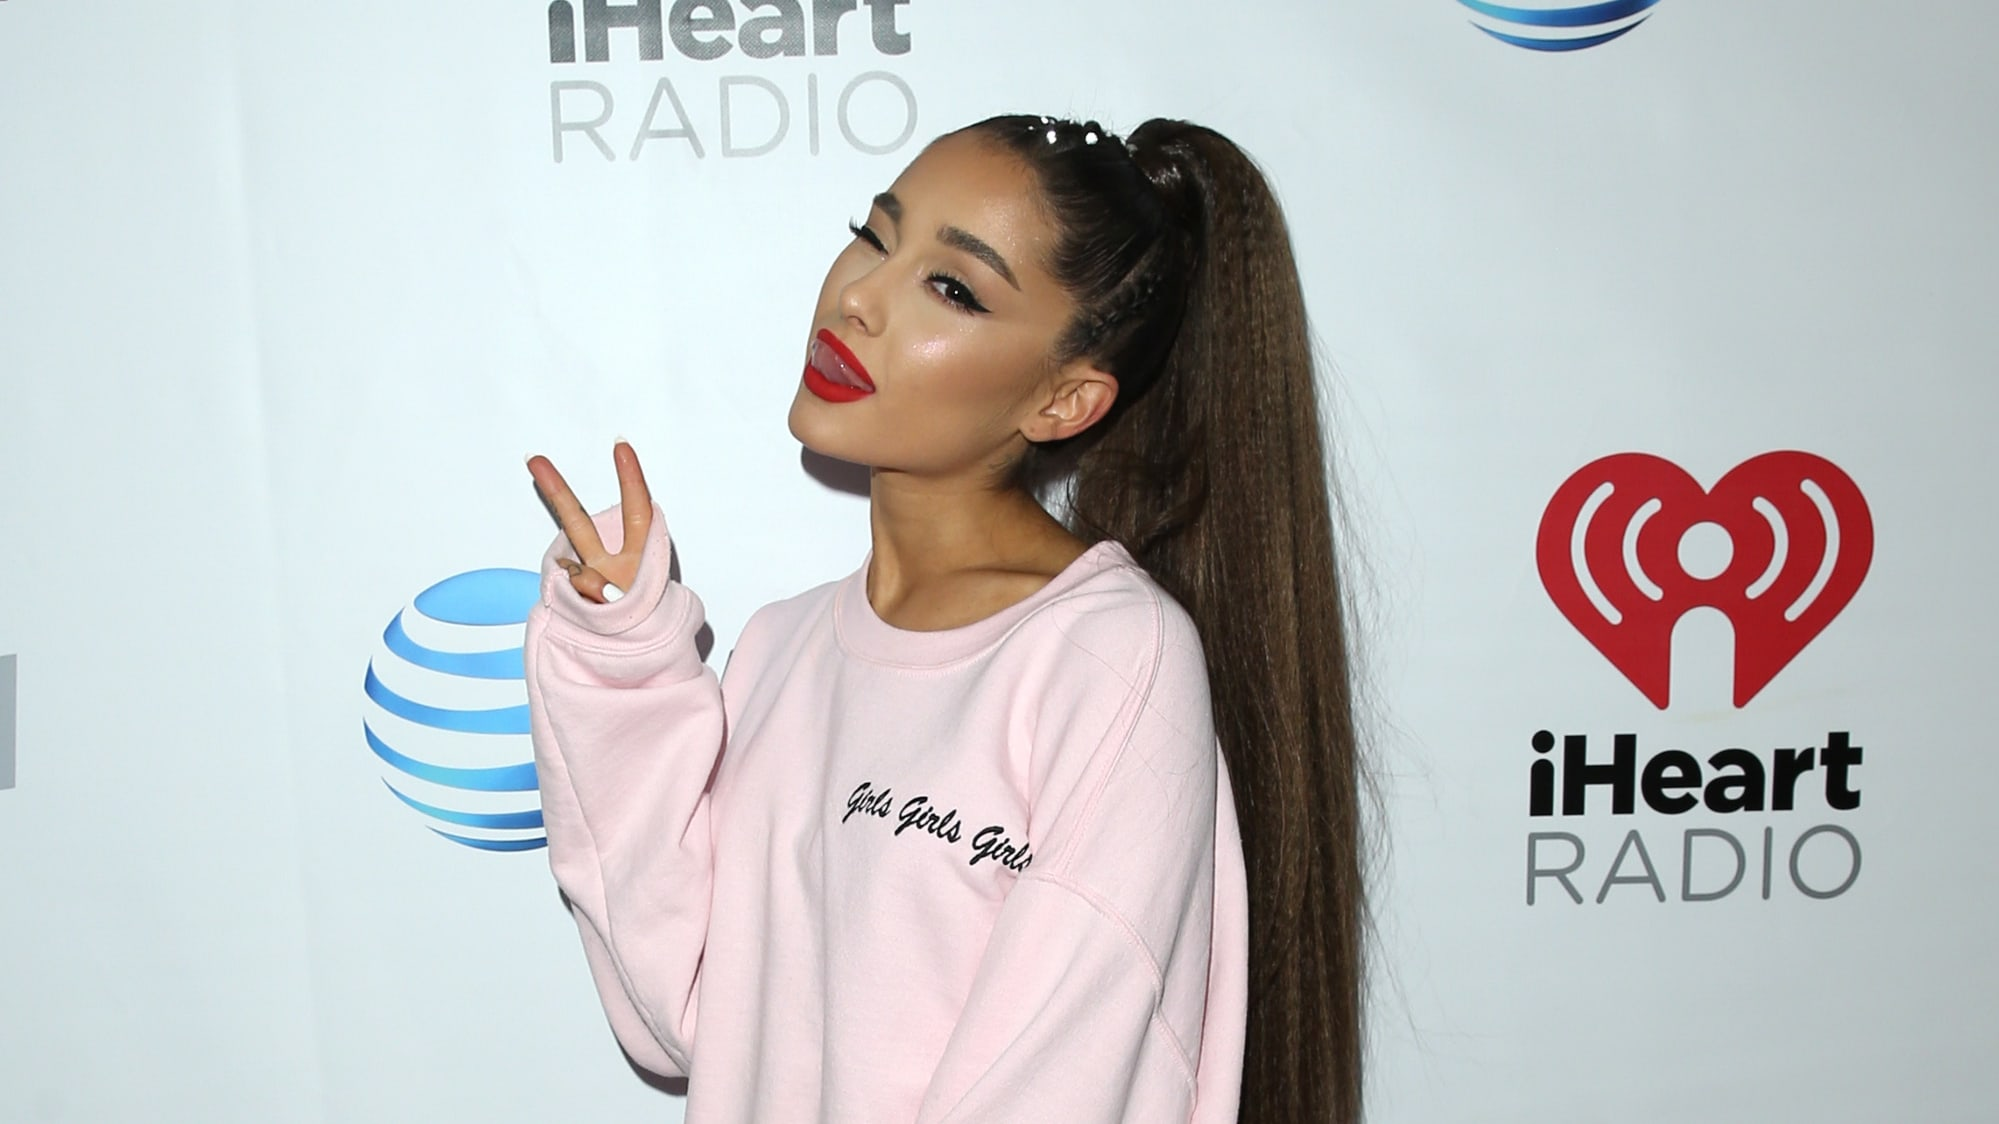 LOS ANGELES, CA - JUNE 02:  (EDITORIAL USE ONLY. NO COMMERCIAL USE) Ariana Grande backstage at the 2018 iHeartRadio Wango Tango by AT&T at Banc of California Stadium on June 2, 2018 in Los Angeles, California.  (Photo by Jesse Grant/Getty Images for iHeartMedia)